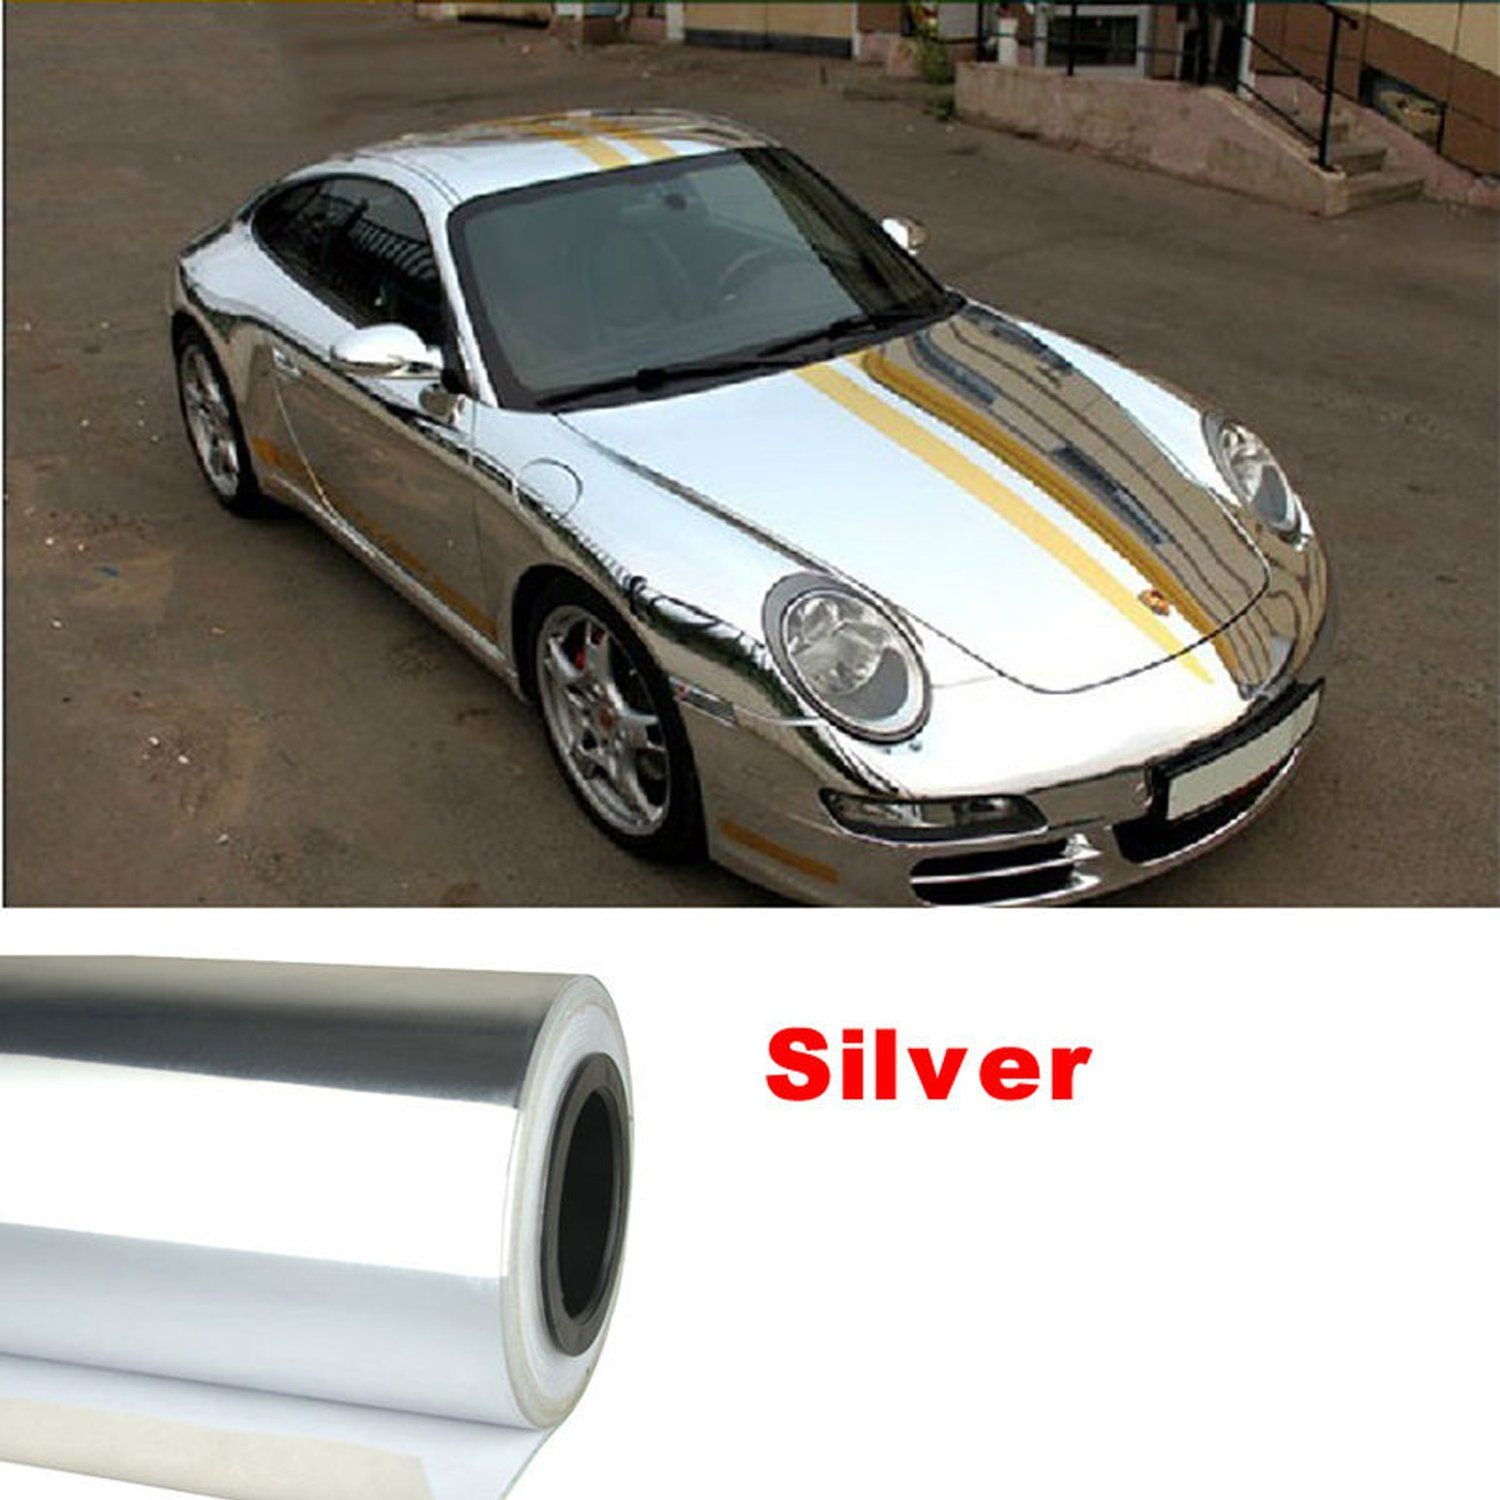 Amazon Com Nuoya001 New 12 X60 Silver Metallic Car Sticker Wrap Sheet Cover Mirror Chrome Film Decal Baby Car Stickers Mirror Vinyl Vinyl Decals